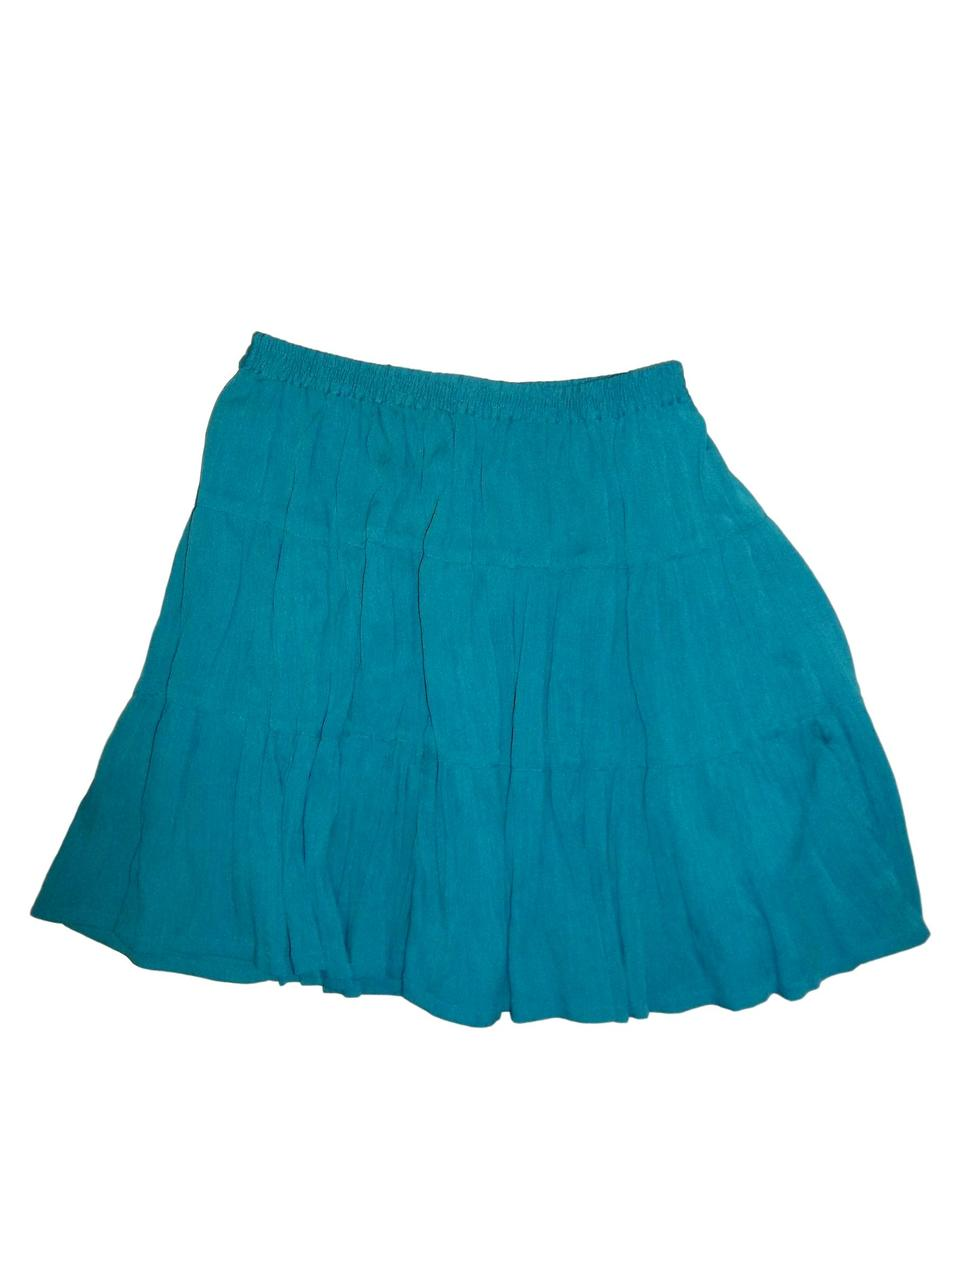 Short Polybrepe Broomed Skirt